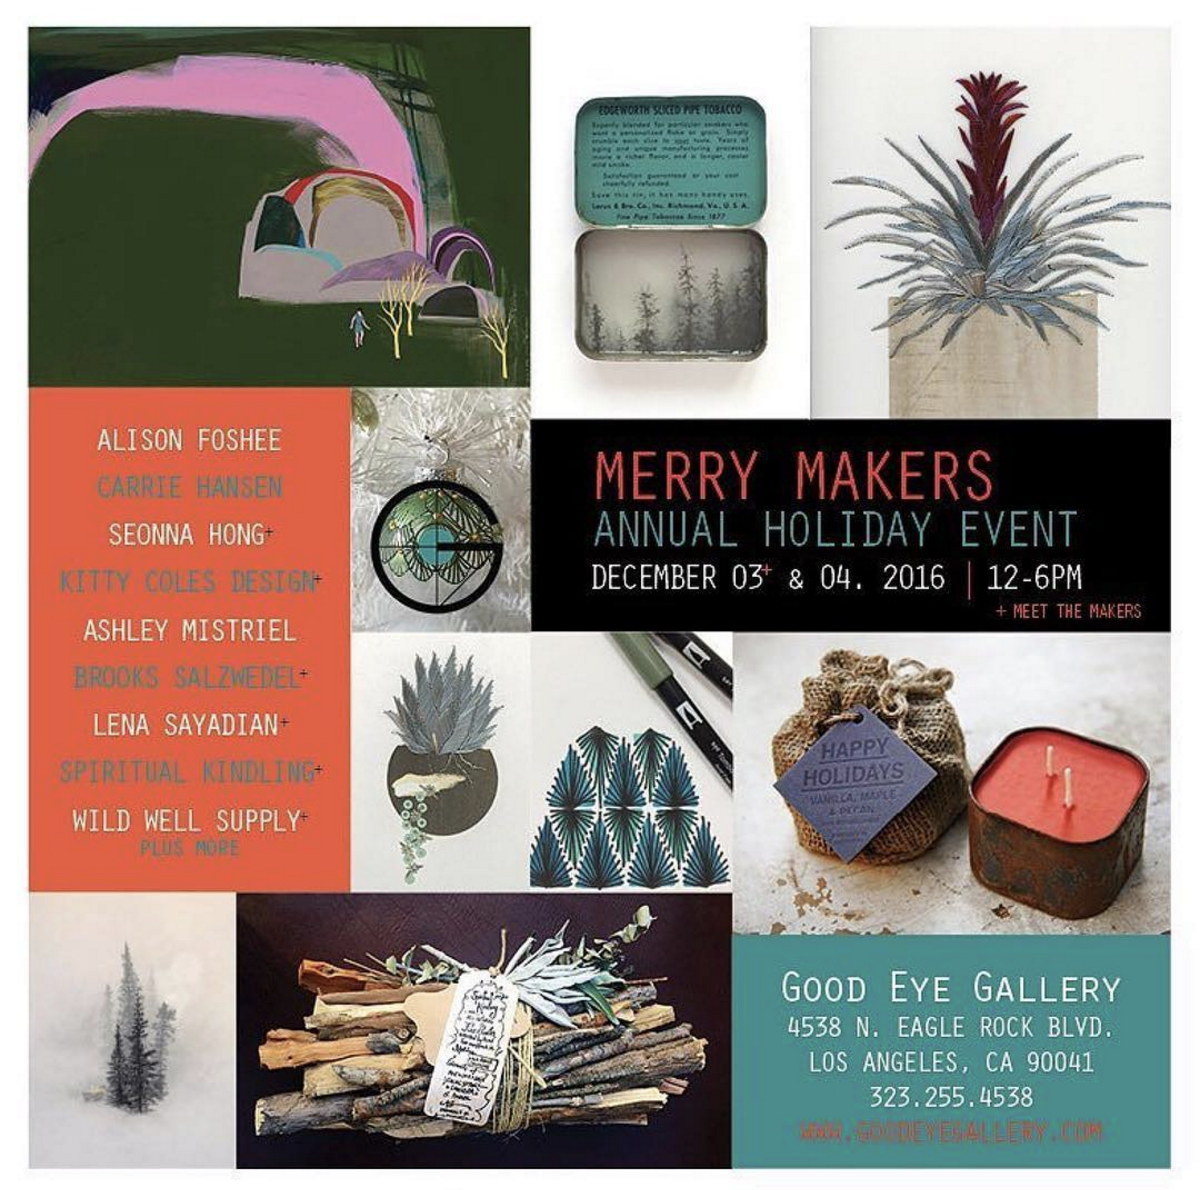 Saturday December 3rd and Sunday December 4th we will be celebrating two years of art, objects and decor with some of our favorite creative people. One of a kind gifts for the holiday include Spiritual Kindling twig bundles, limited edition Seonna Hong prints, tiny tins by Brooks Salzwedel. hand painted ornaments and cards by Katie Shipley, hand poured wood wick candles by Wild Well Supply, staple leaf art by Alison Foshee, custom pet portraits, jewelry, leather goods and more. 10% discounts for all new customers or anyone who tags Good Eye Gallery in store on their social media account. Holiday hours are Thurs-Sat 12-5 or by appointment/chance. Contact  323 255-4538  for more information. 15% of all sales go to the legal defense fund at Standing Rock.   goodeyegallery.com